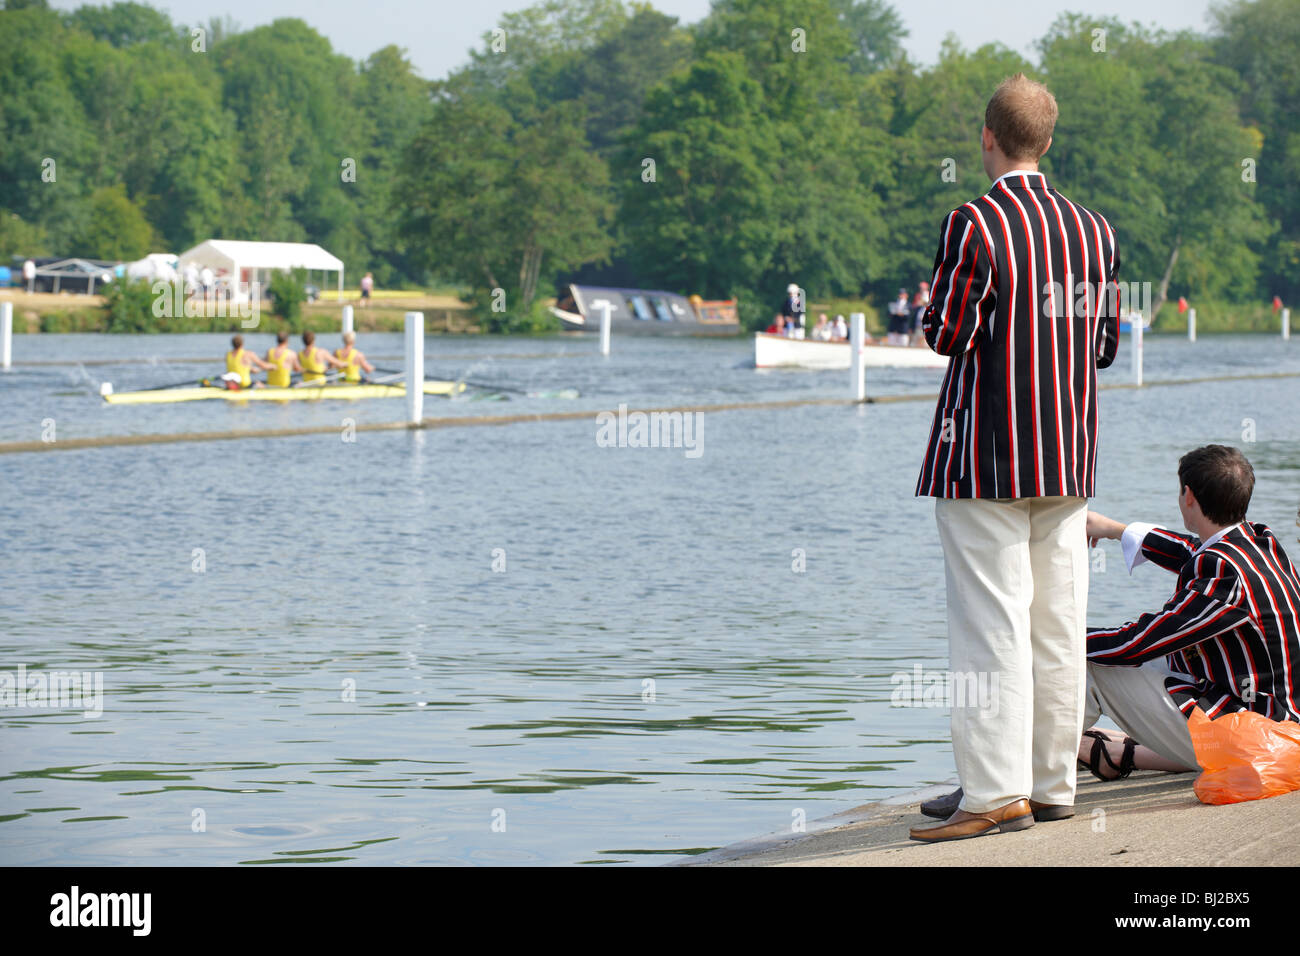 Spectator watching a race at the Royal Henley Regatta from the river side - Stock Image